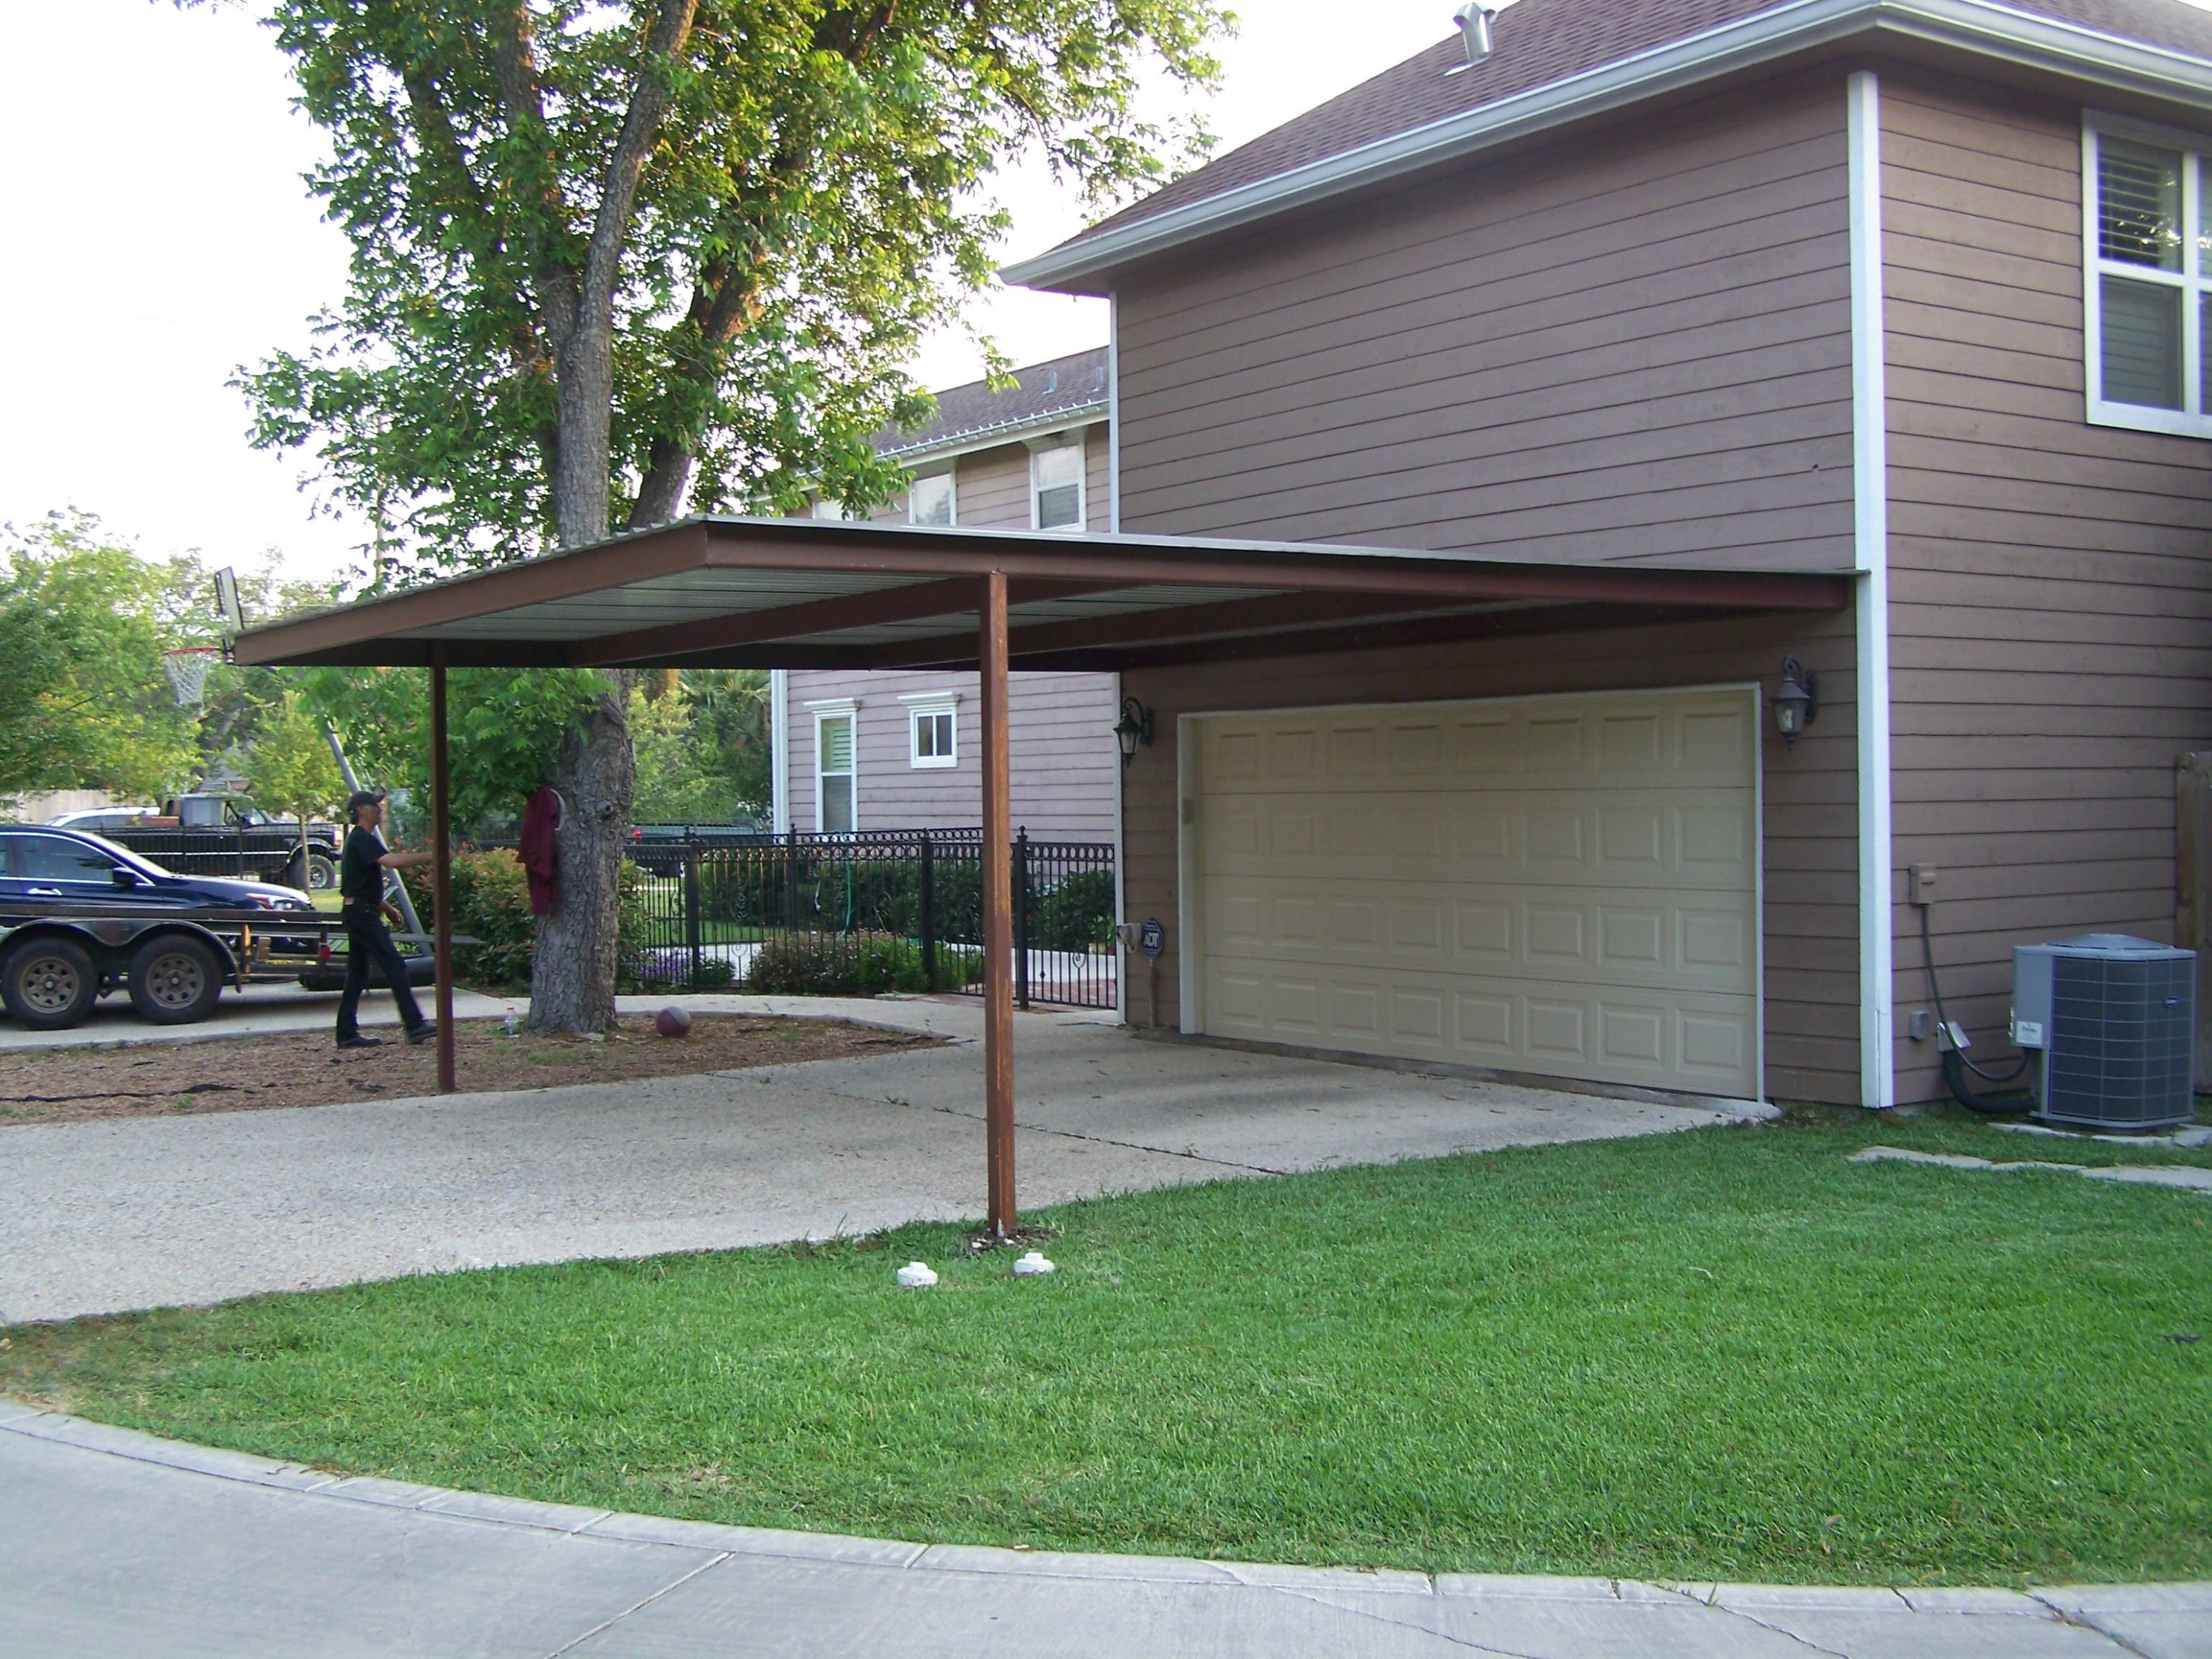 Best Photos, Images, And Pictures Gallery About Carport ..